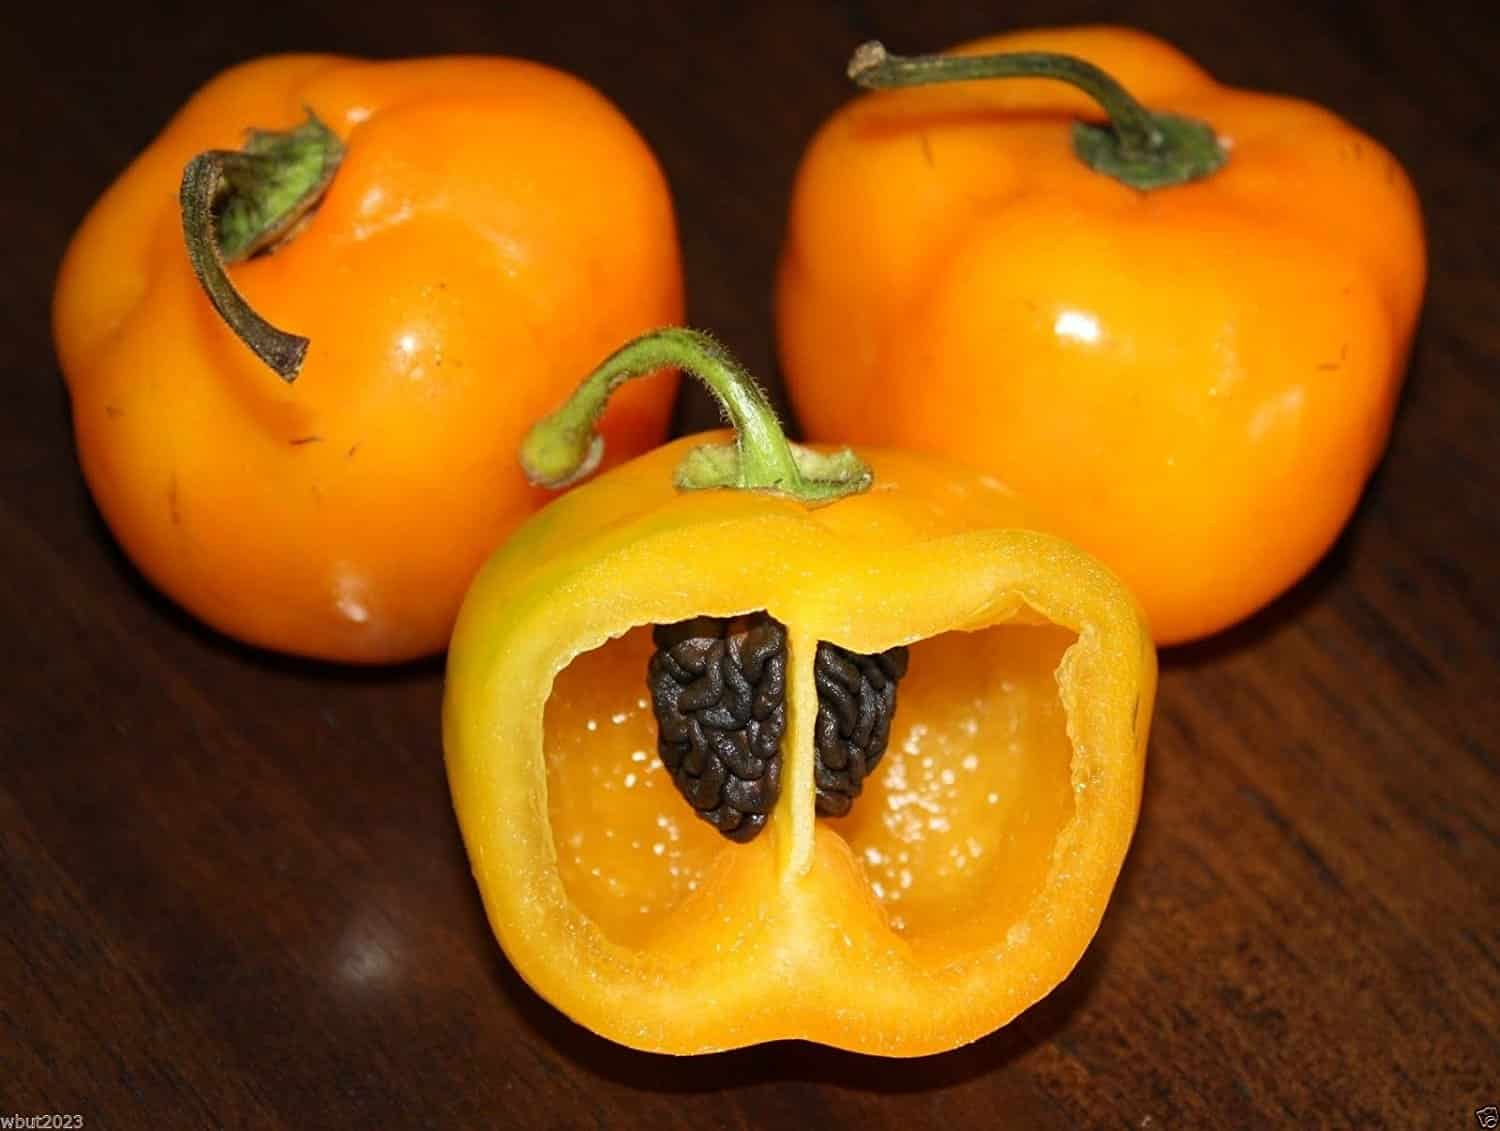 Manzano Pepper: The Apple Chili